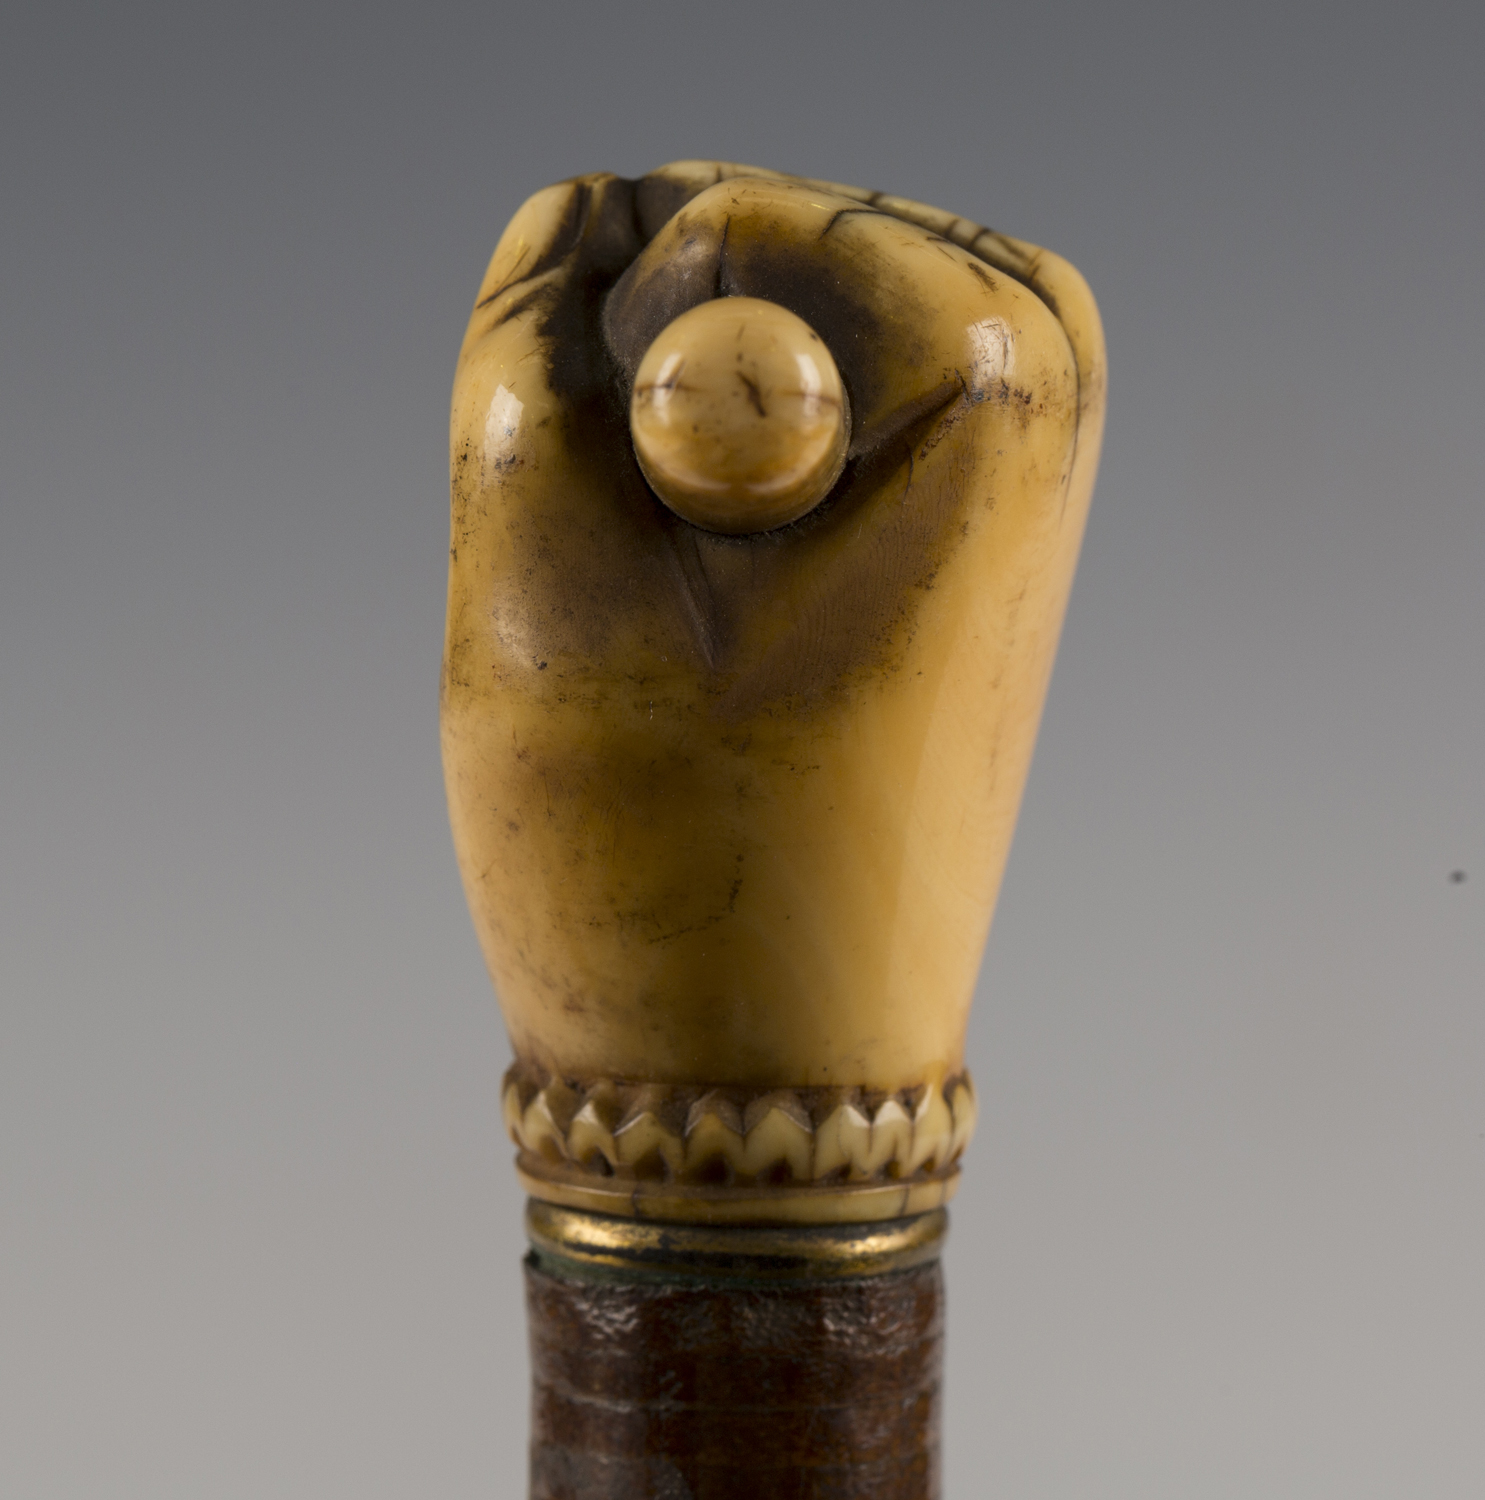 A 19th century sectional joined leather walking cane, the ivory handle carved as a hand holding a - Image 5 of 7